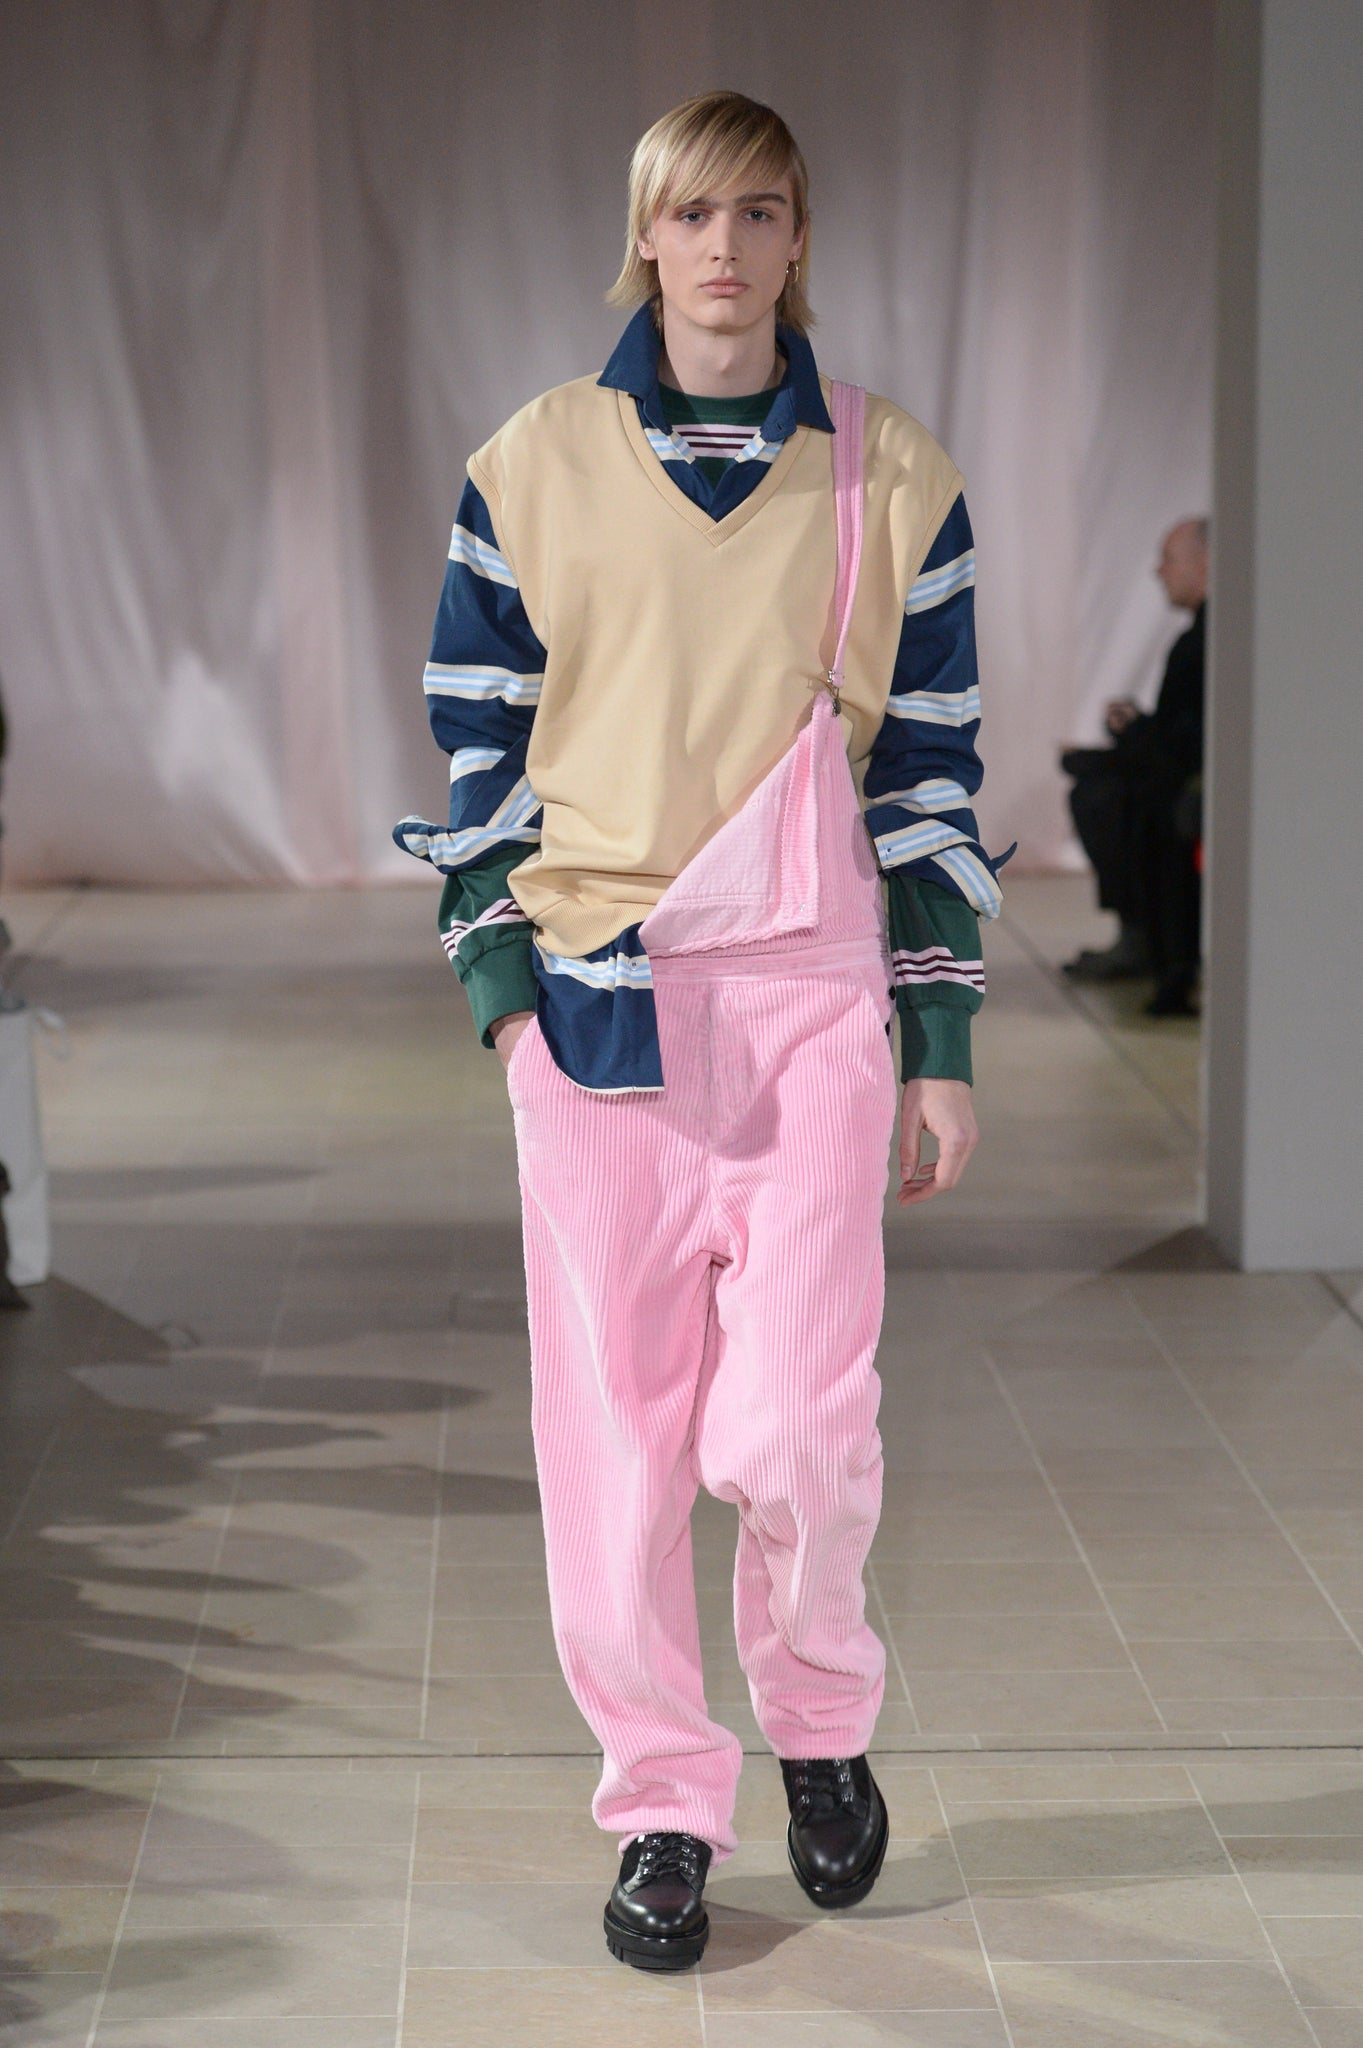 Martin Asbjorn Pink corduroy overalls for fall 19 collection Freedom